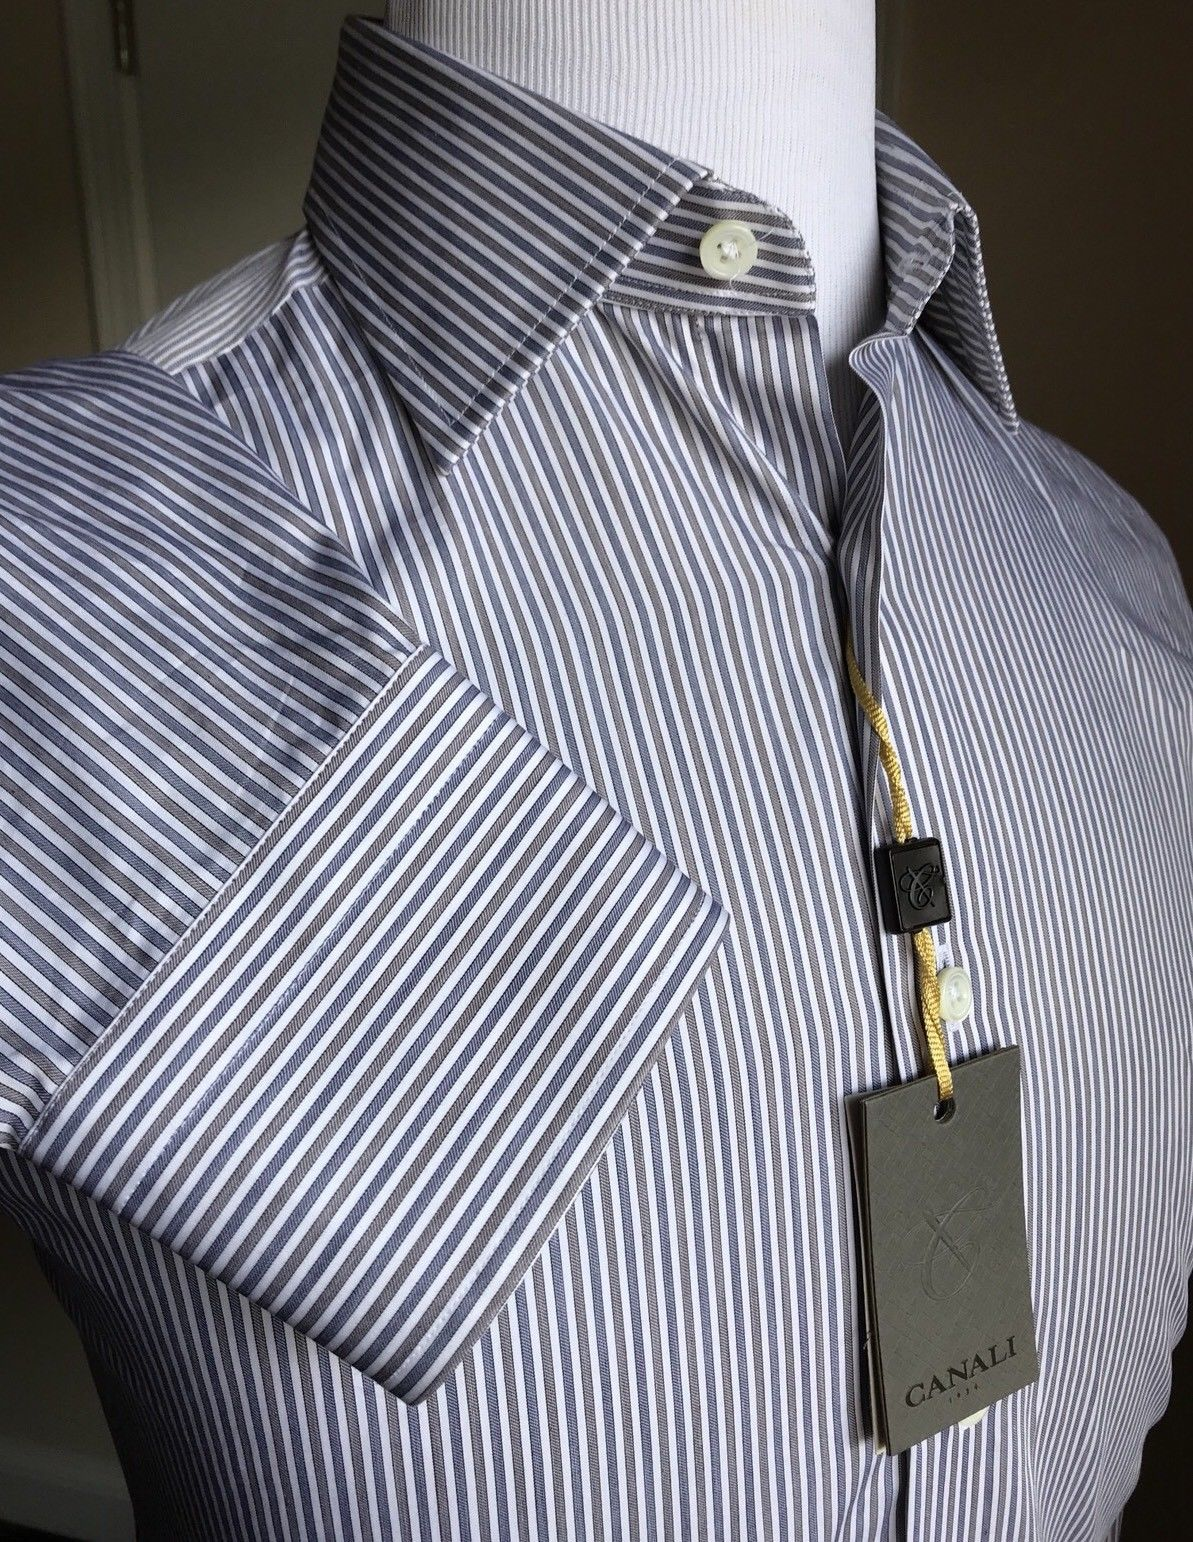 cd928e5c0d New  280 Canali Dress Shirt Blue Striped Size 39 15.5 Italy ...